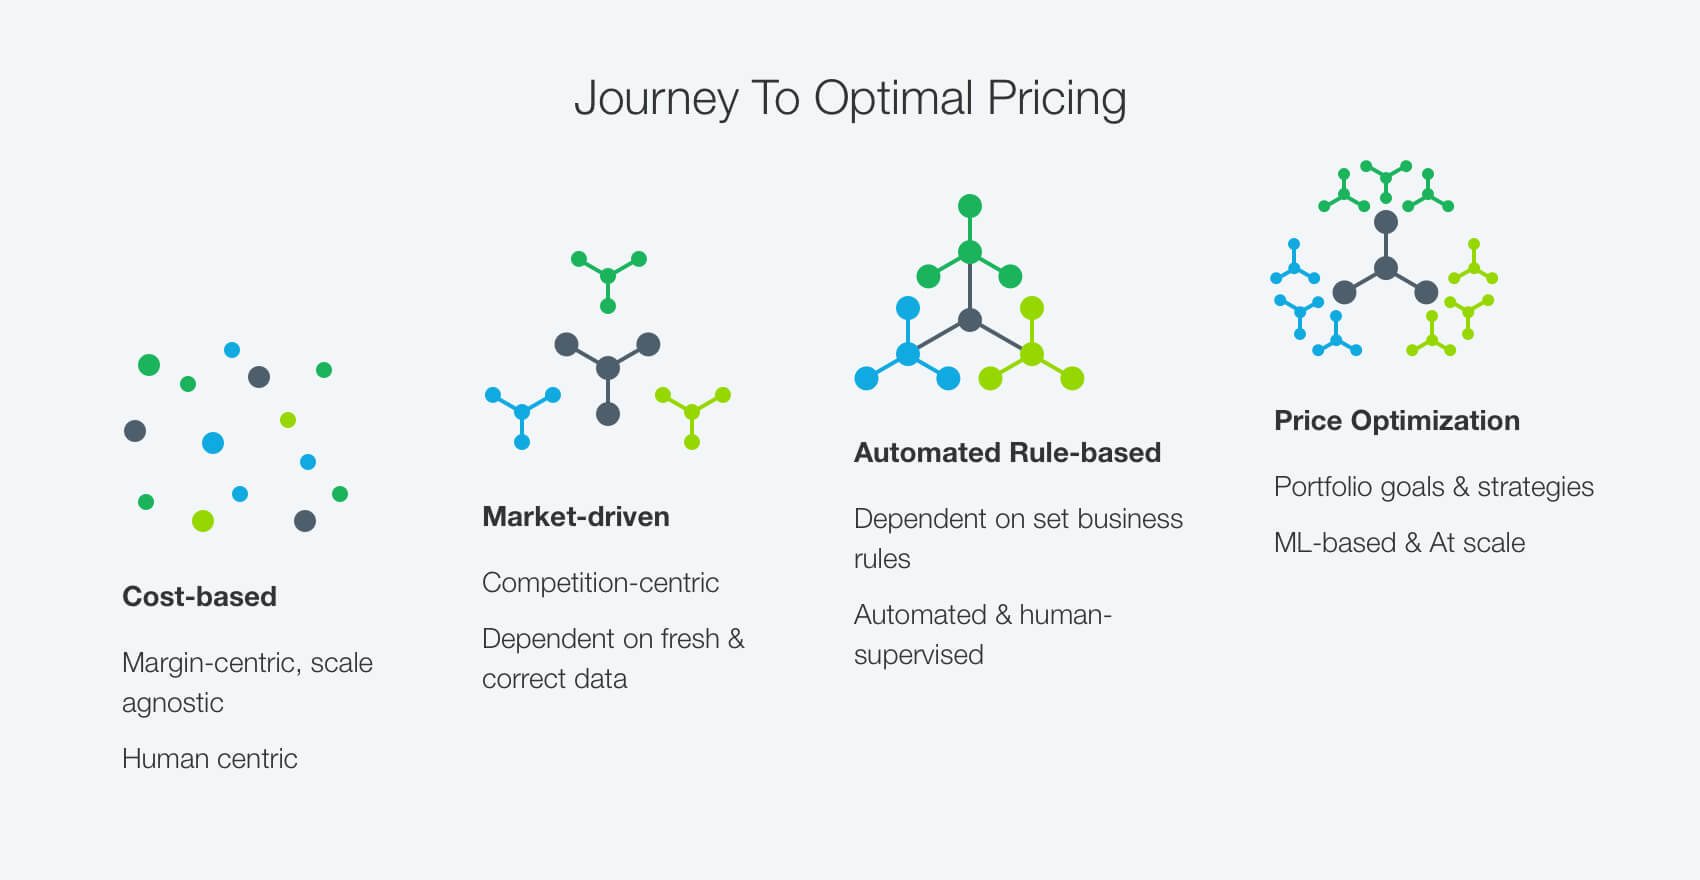 pricing journey